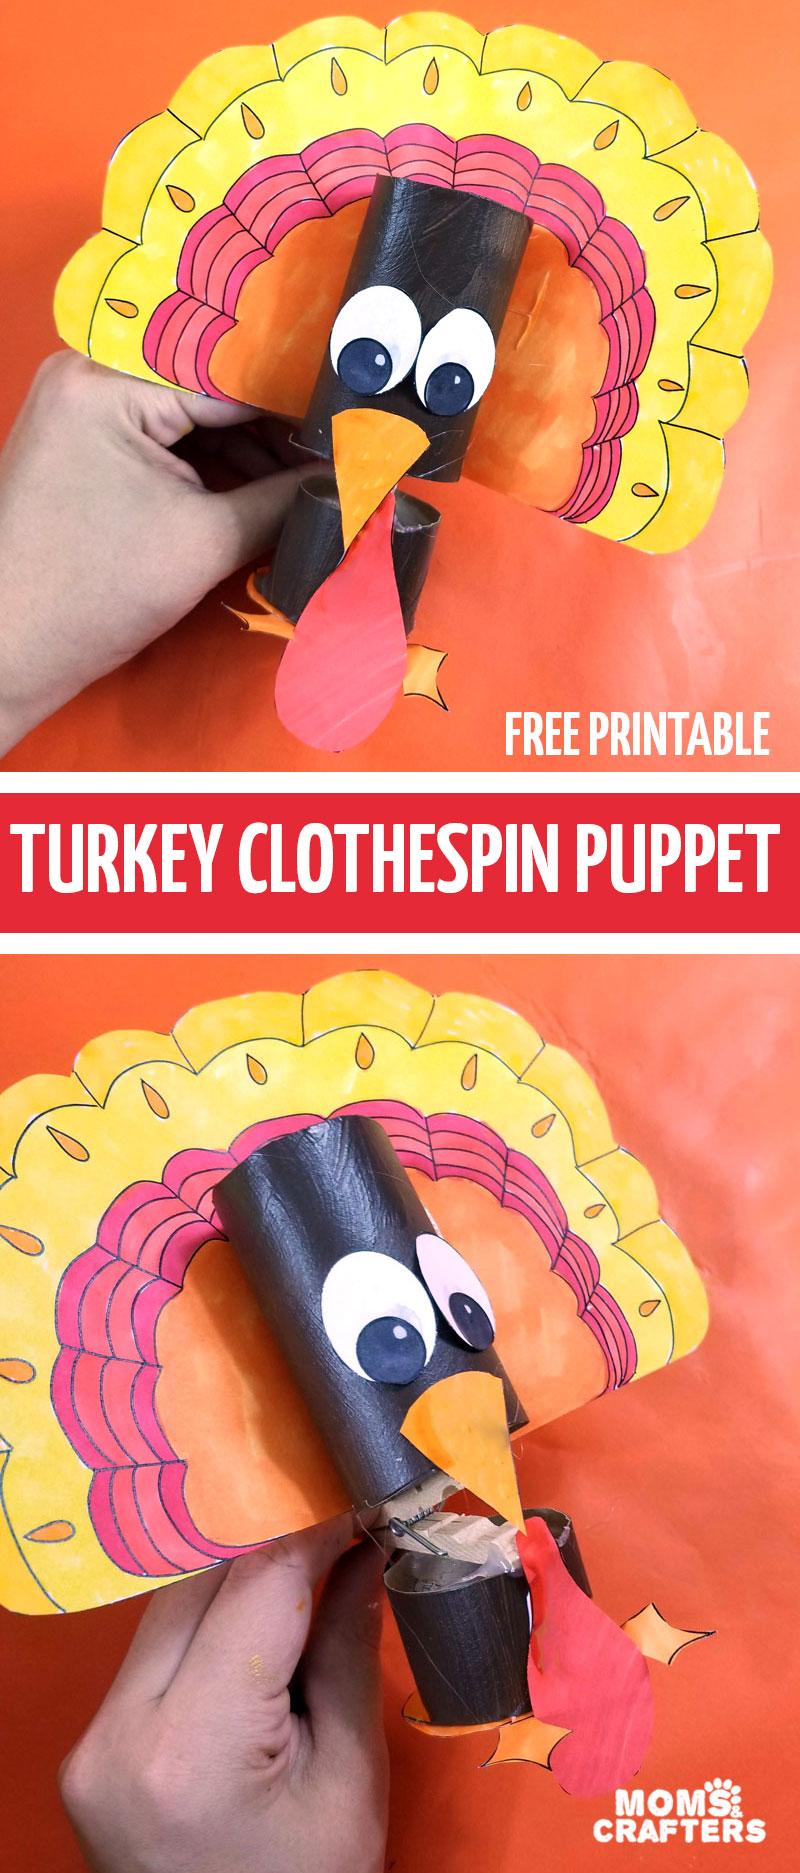 Click to print and download your own turkey puppet template. Make these super adorable thanksgiving crafts using recycled materials - including toilet paper rolls and clothespins! Perfect for kids!